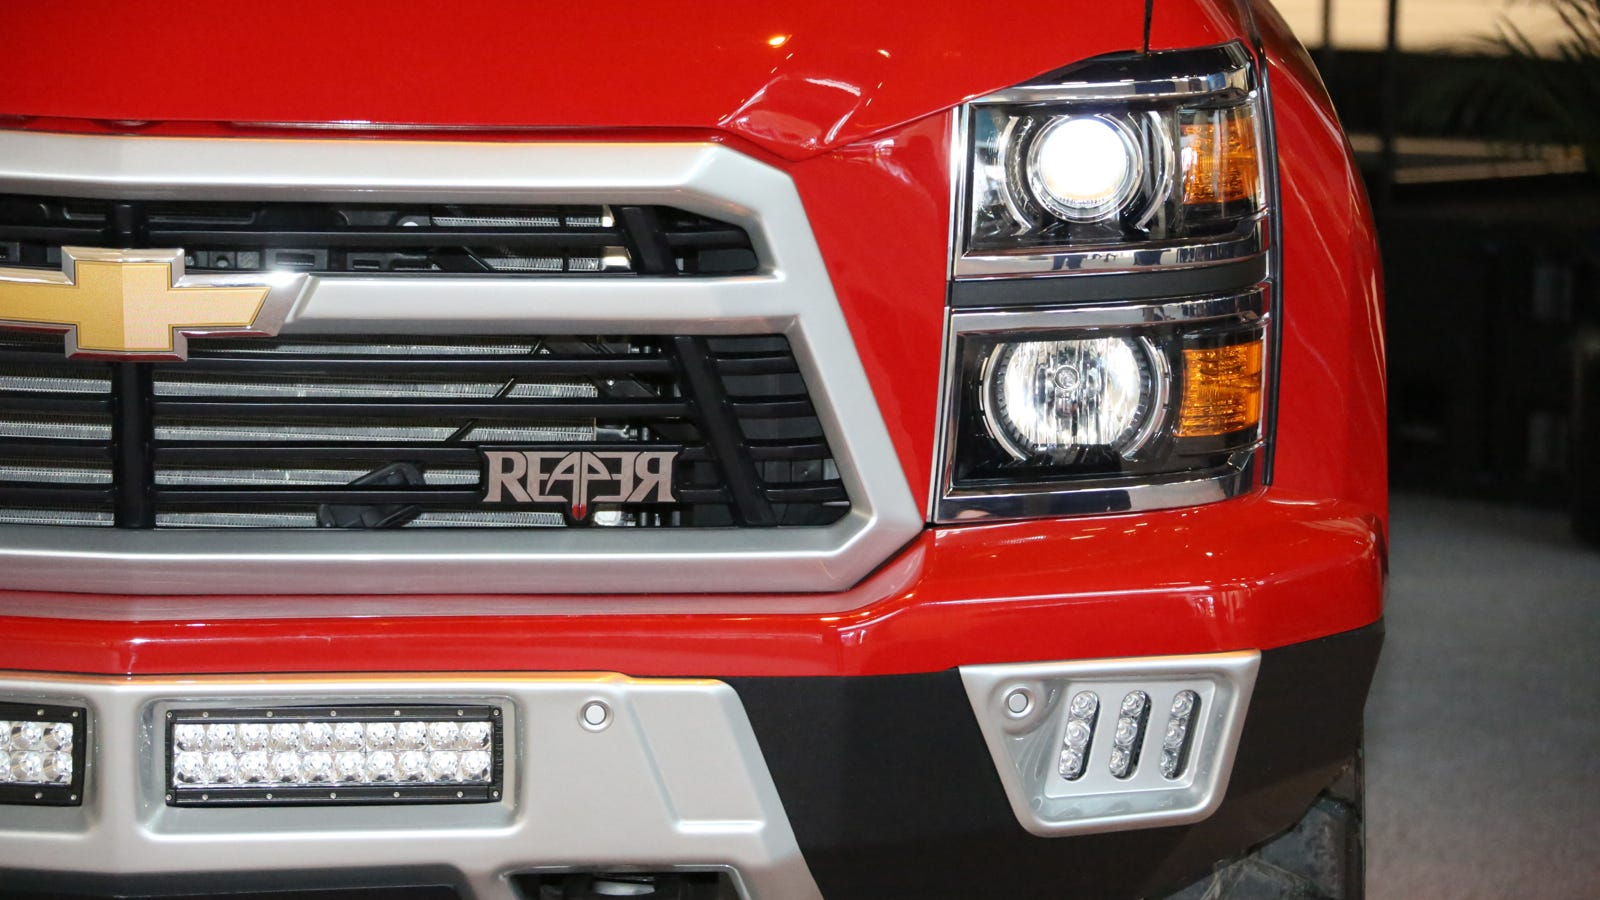 Chevy Reaper Price >> Chevy Silverado Reaper Might Have The Balls To Excuse Its ...